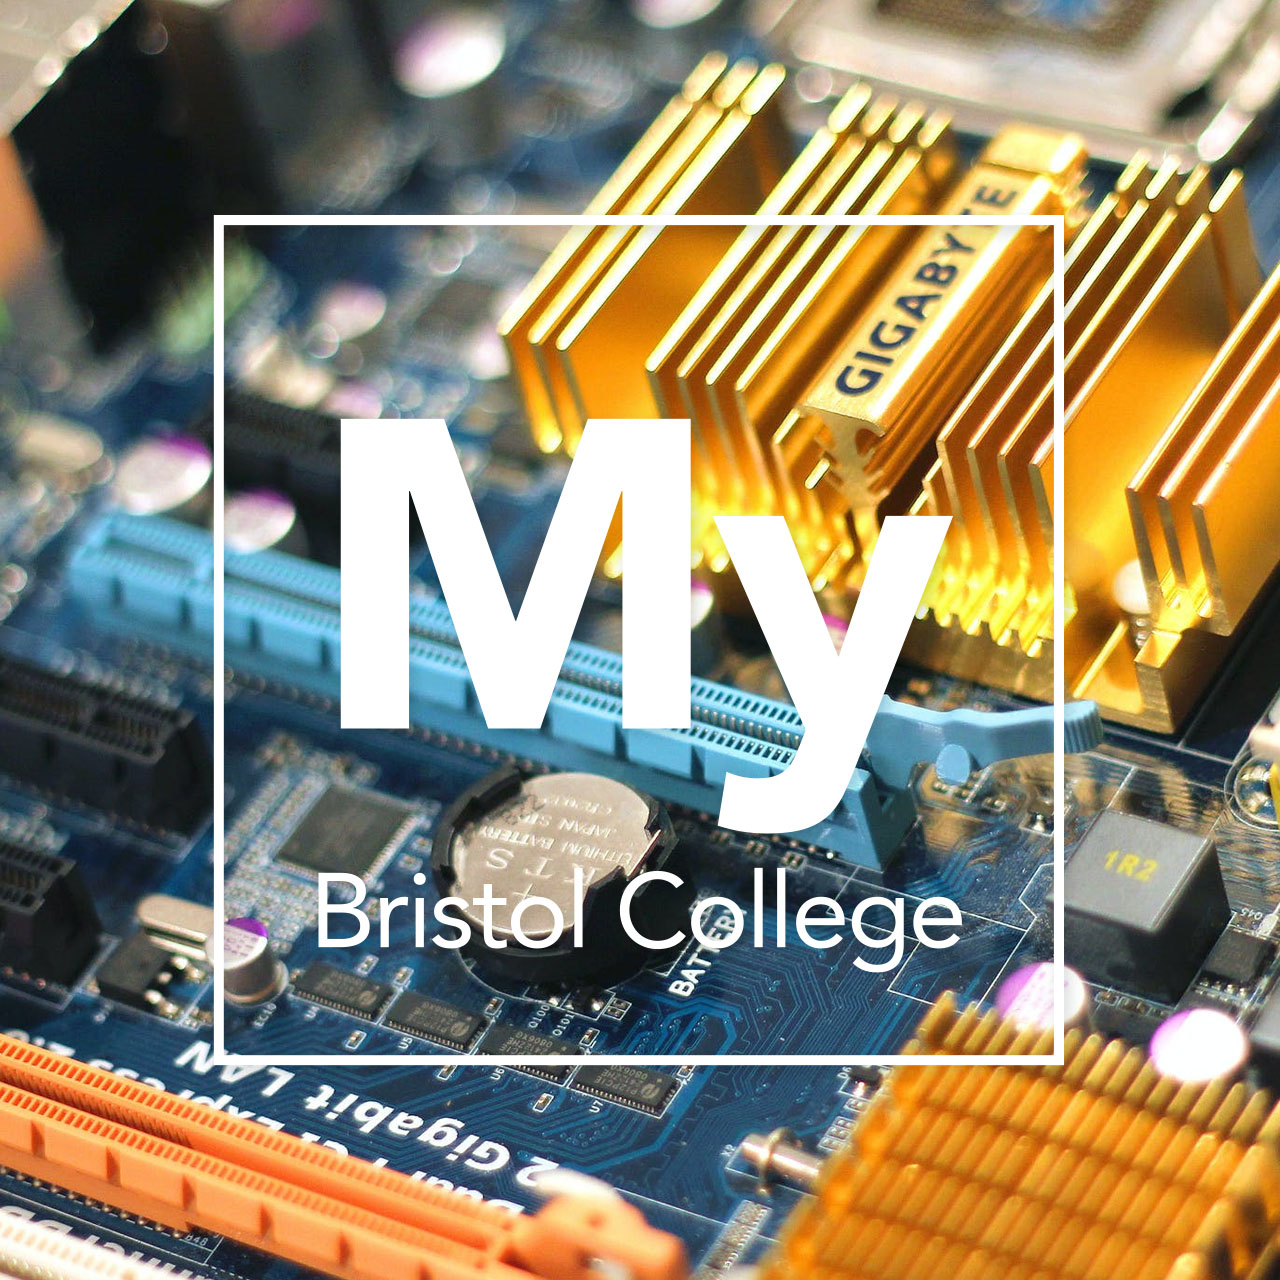 Computing with My Bristol College overlay